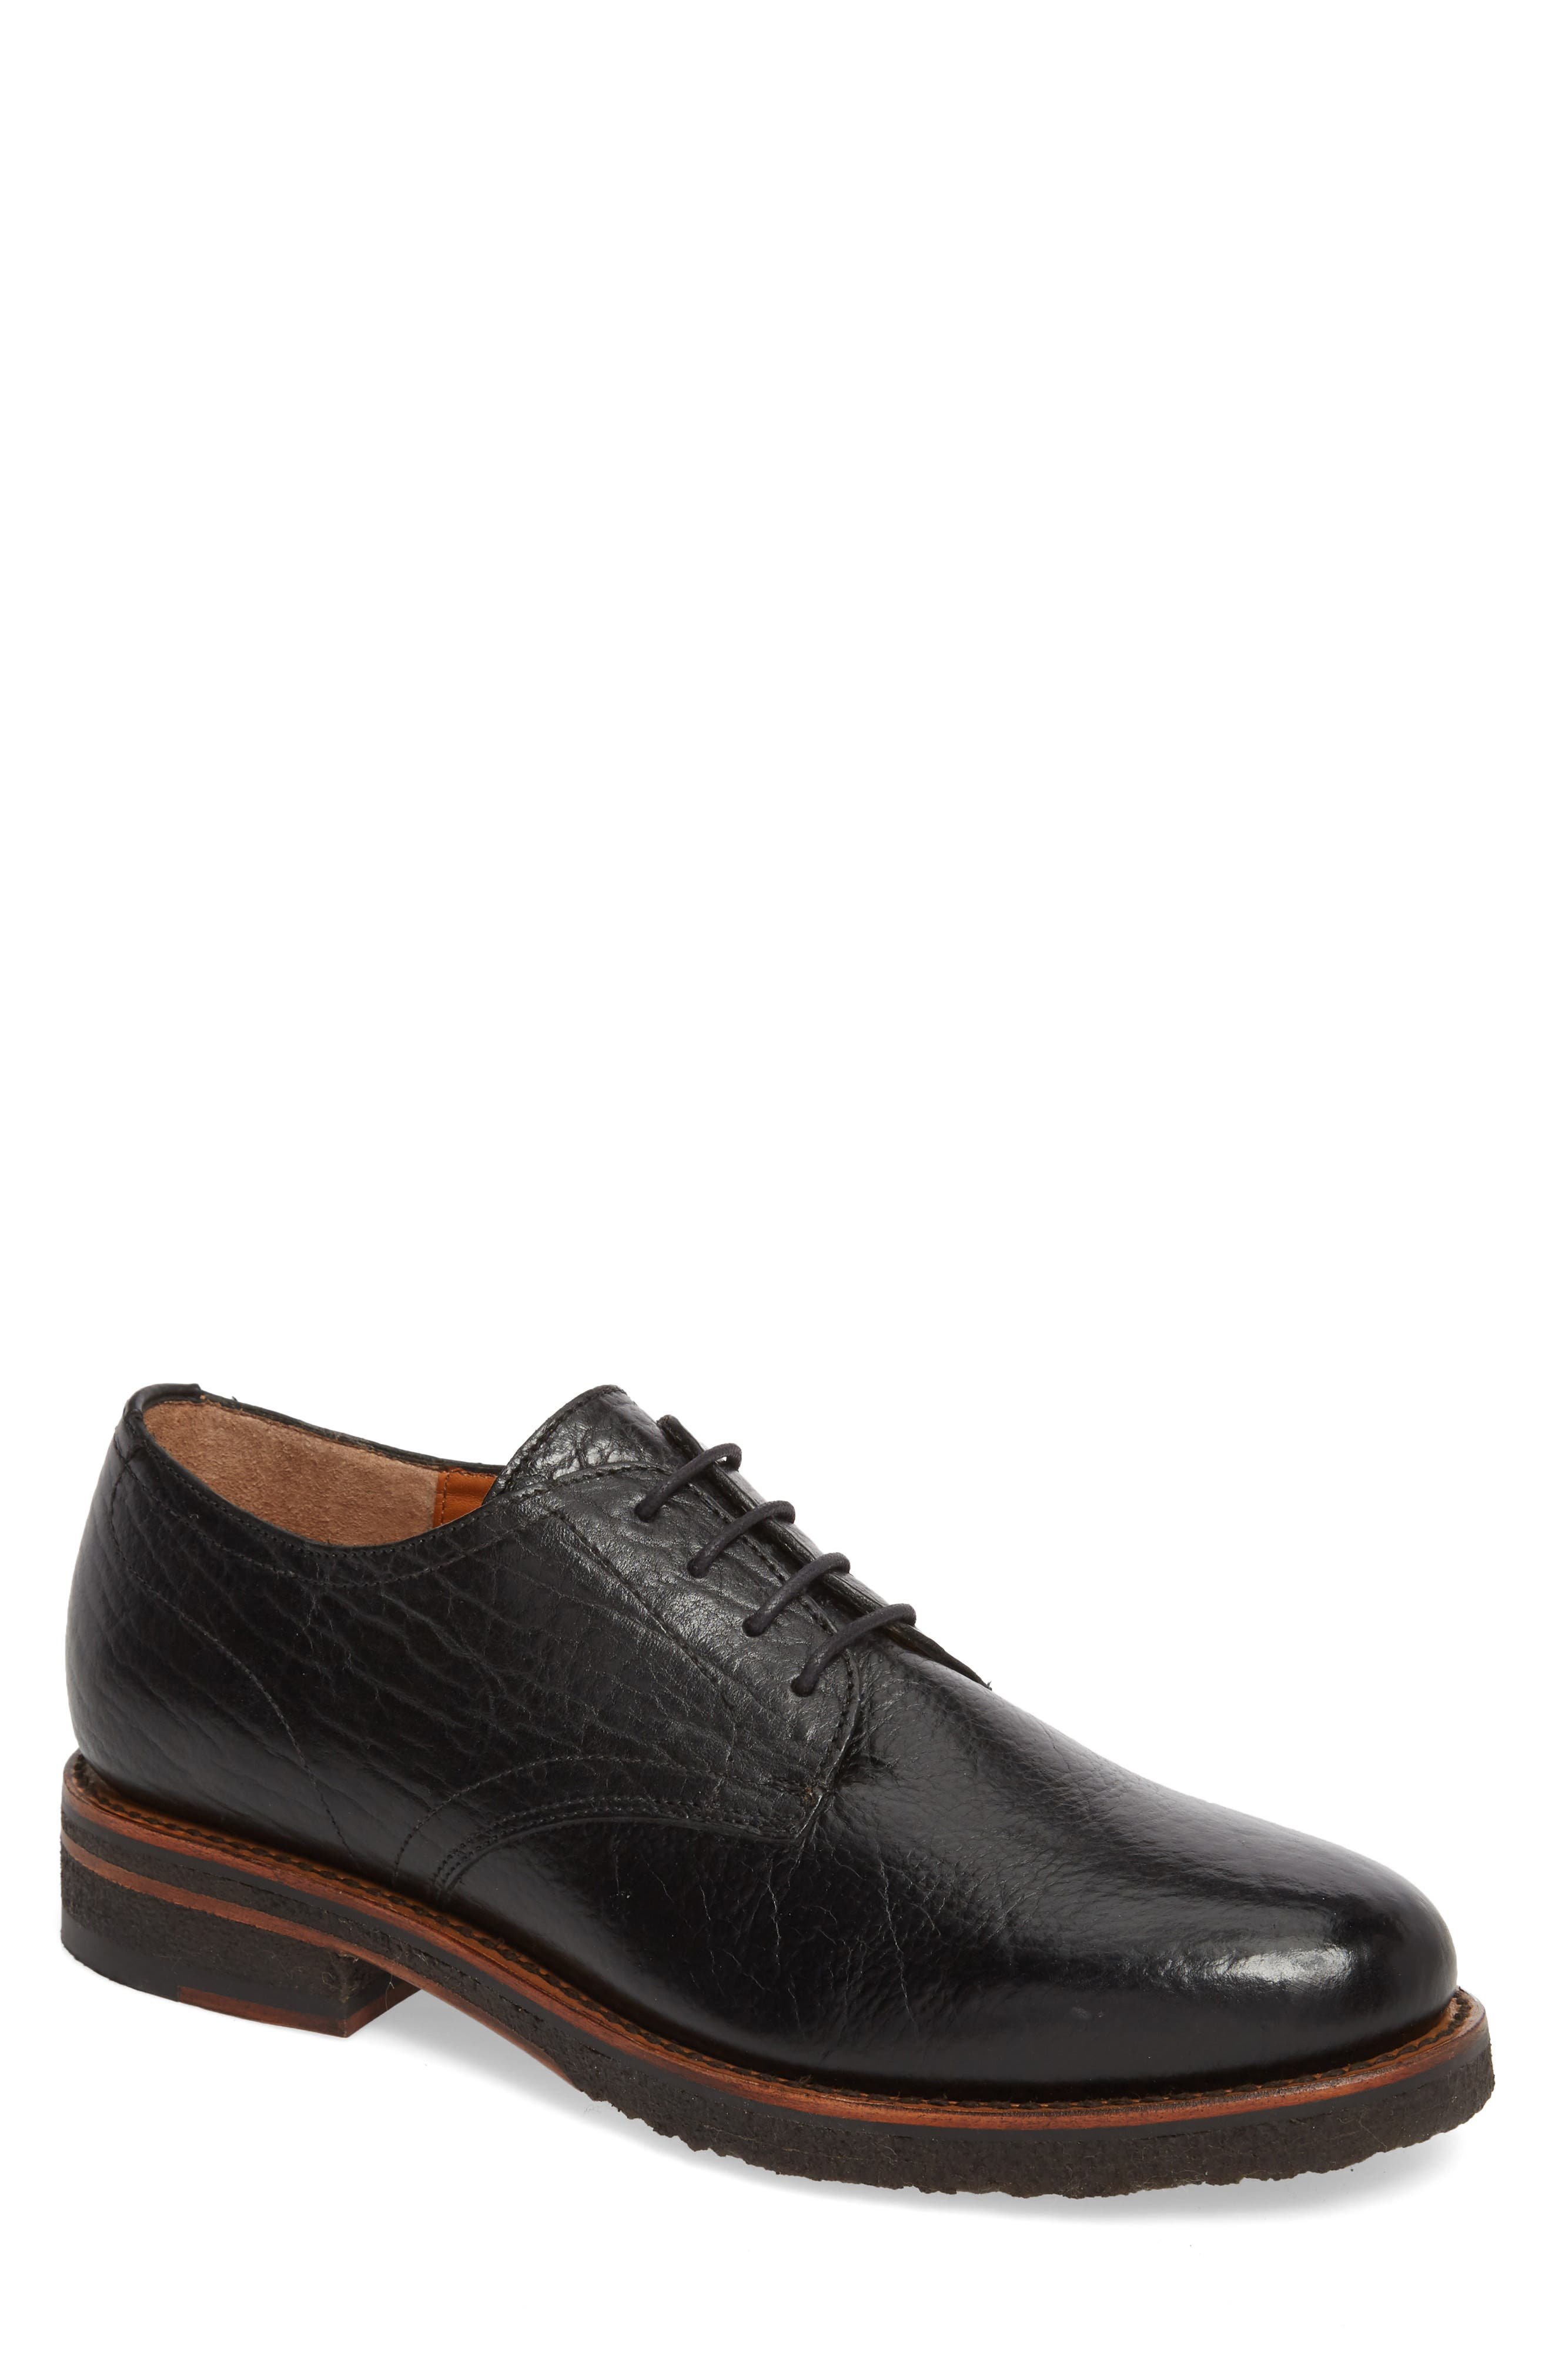 Two24 by Ariat Hawthorne Plain Toe Derby,                         Main,                         color, 001